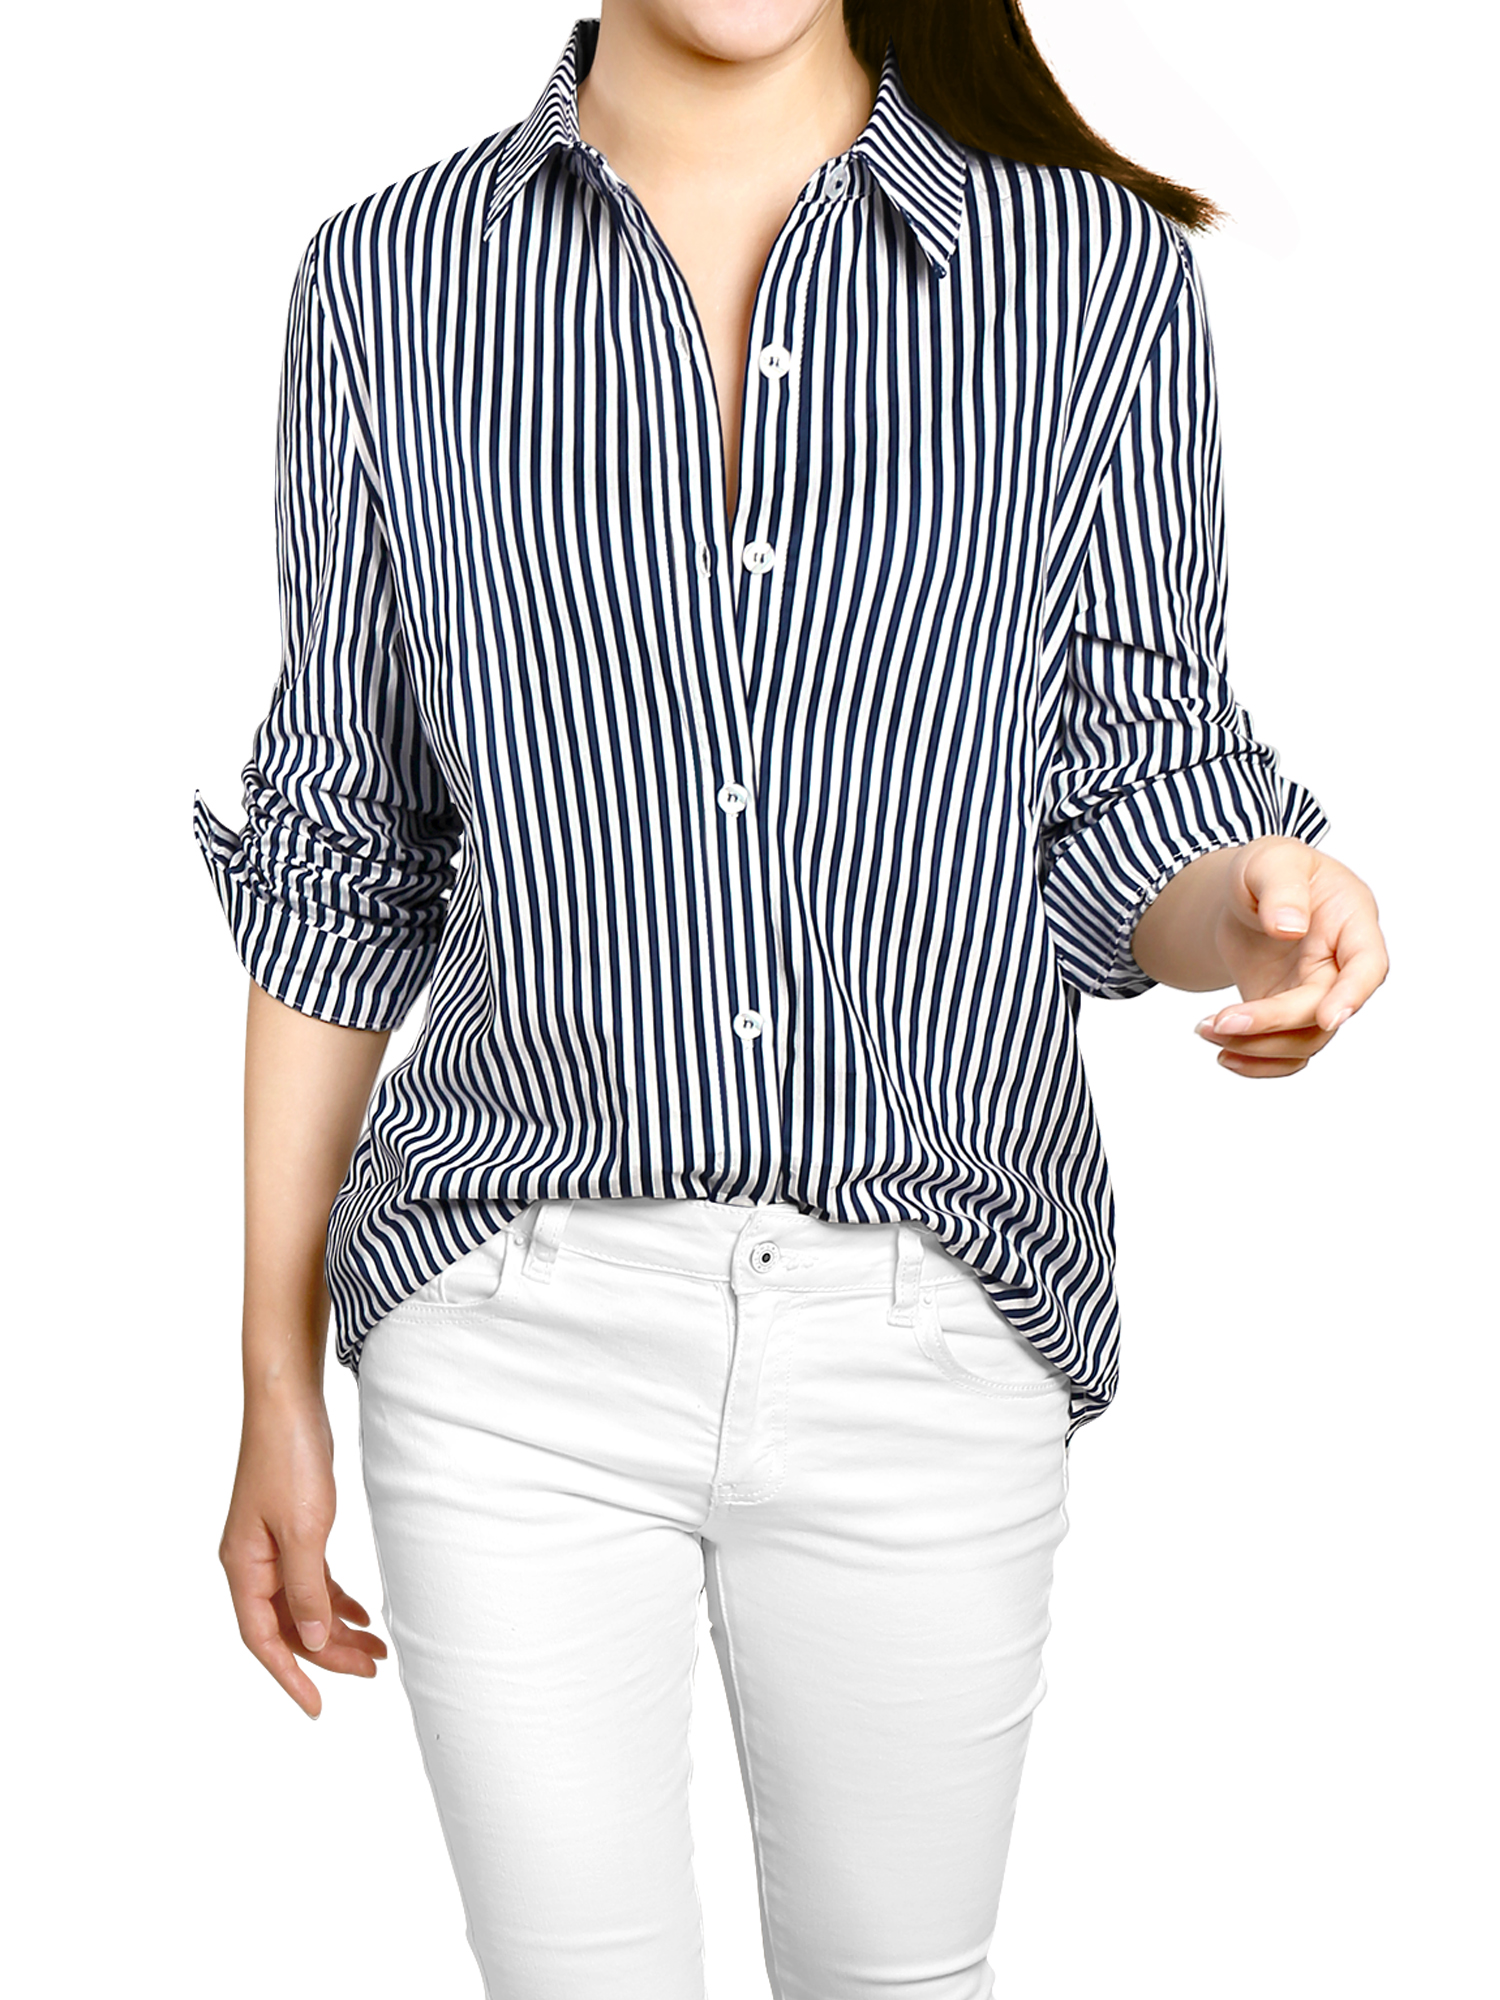 Women Striped High Low Hem Roll Up Sleeves Shirt Dark Blue White S